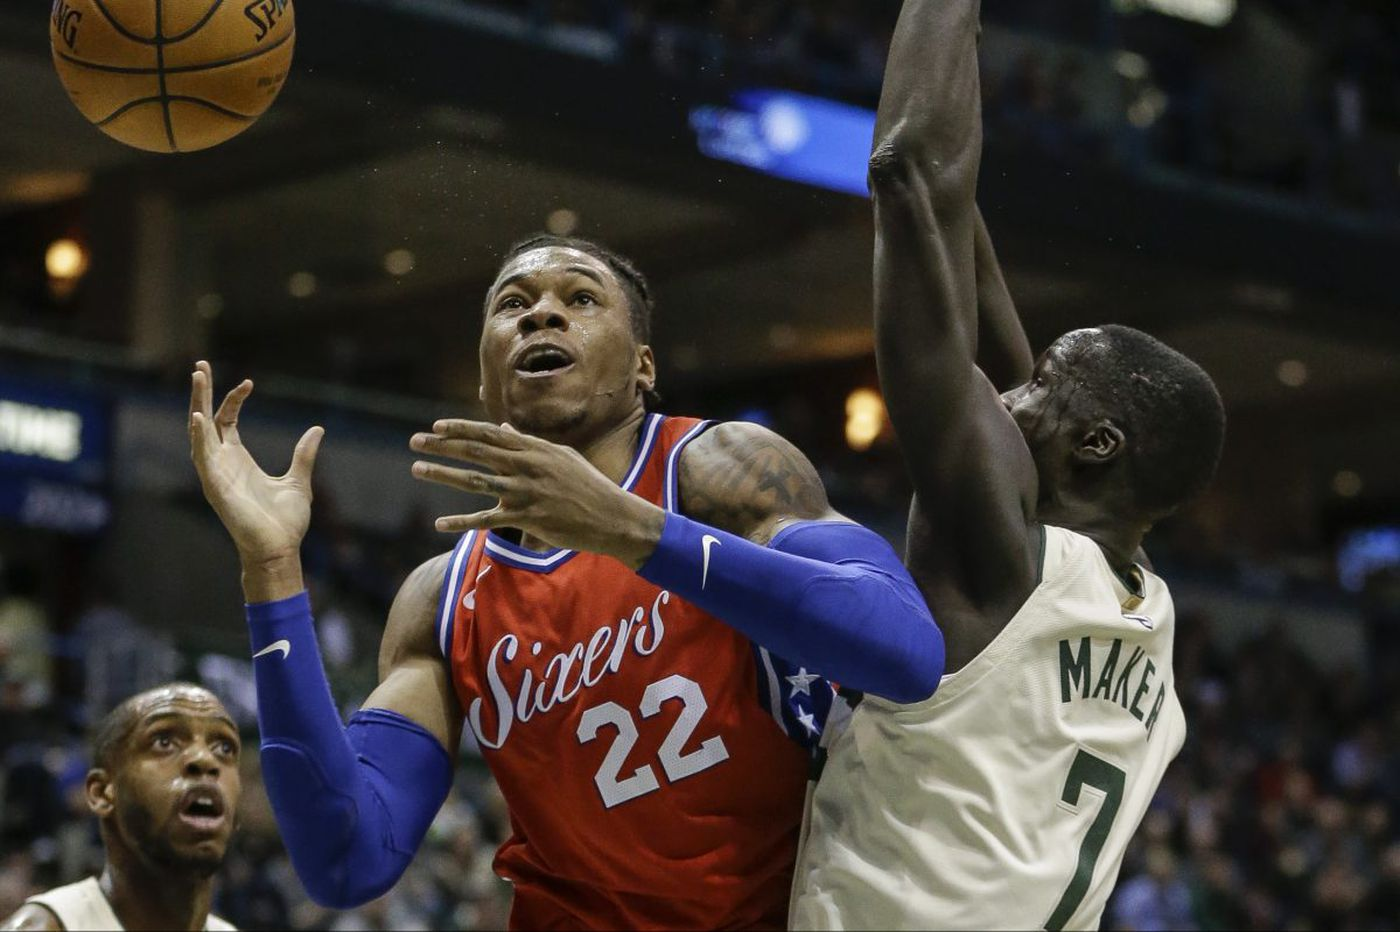 Sixers-Bucks: Giannis Antetokounmpo shines, Sixers can't hit from deep, and other quick thoughts from a 107-95 loss